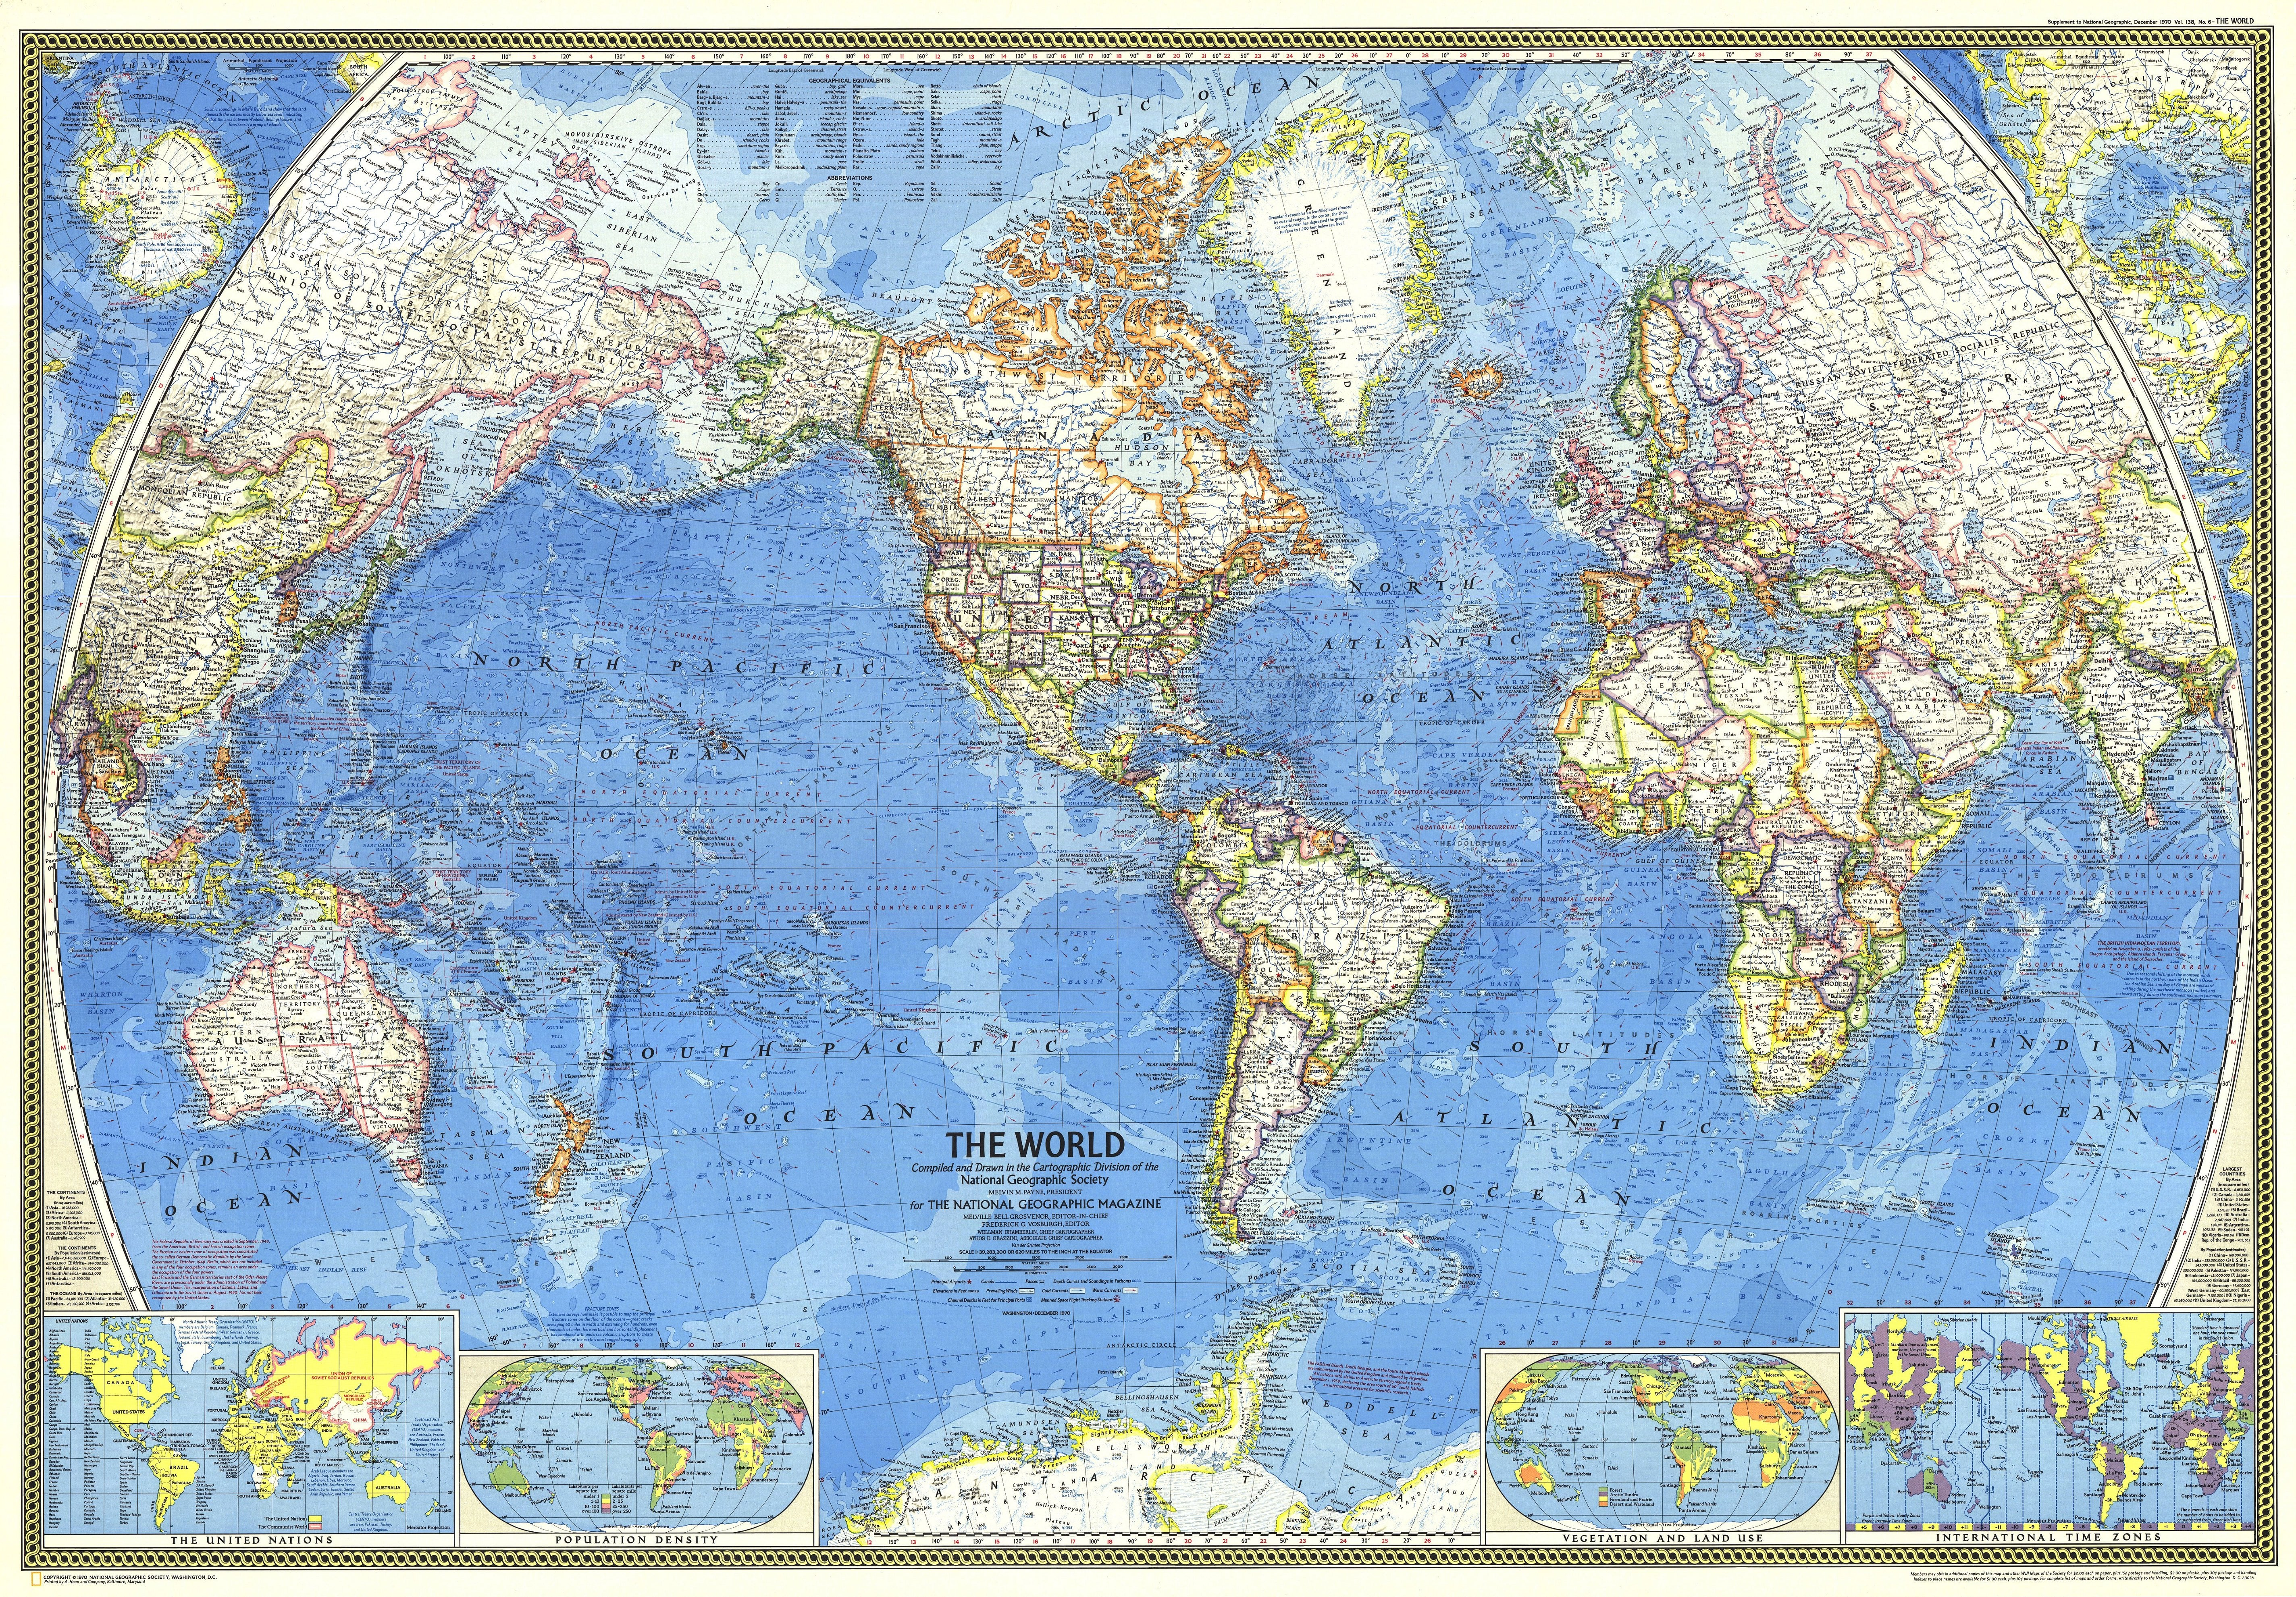 Ngs 1970 World Map